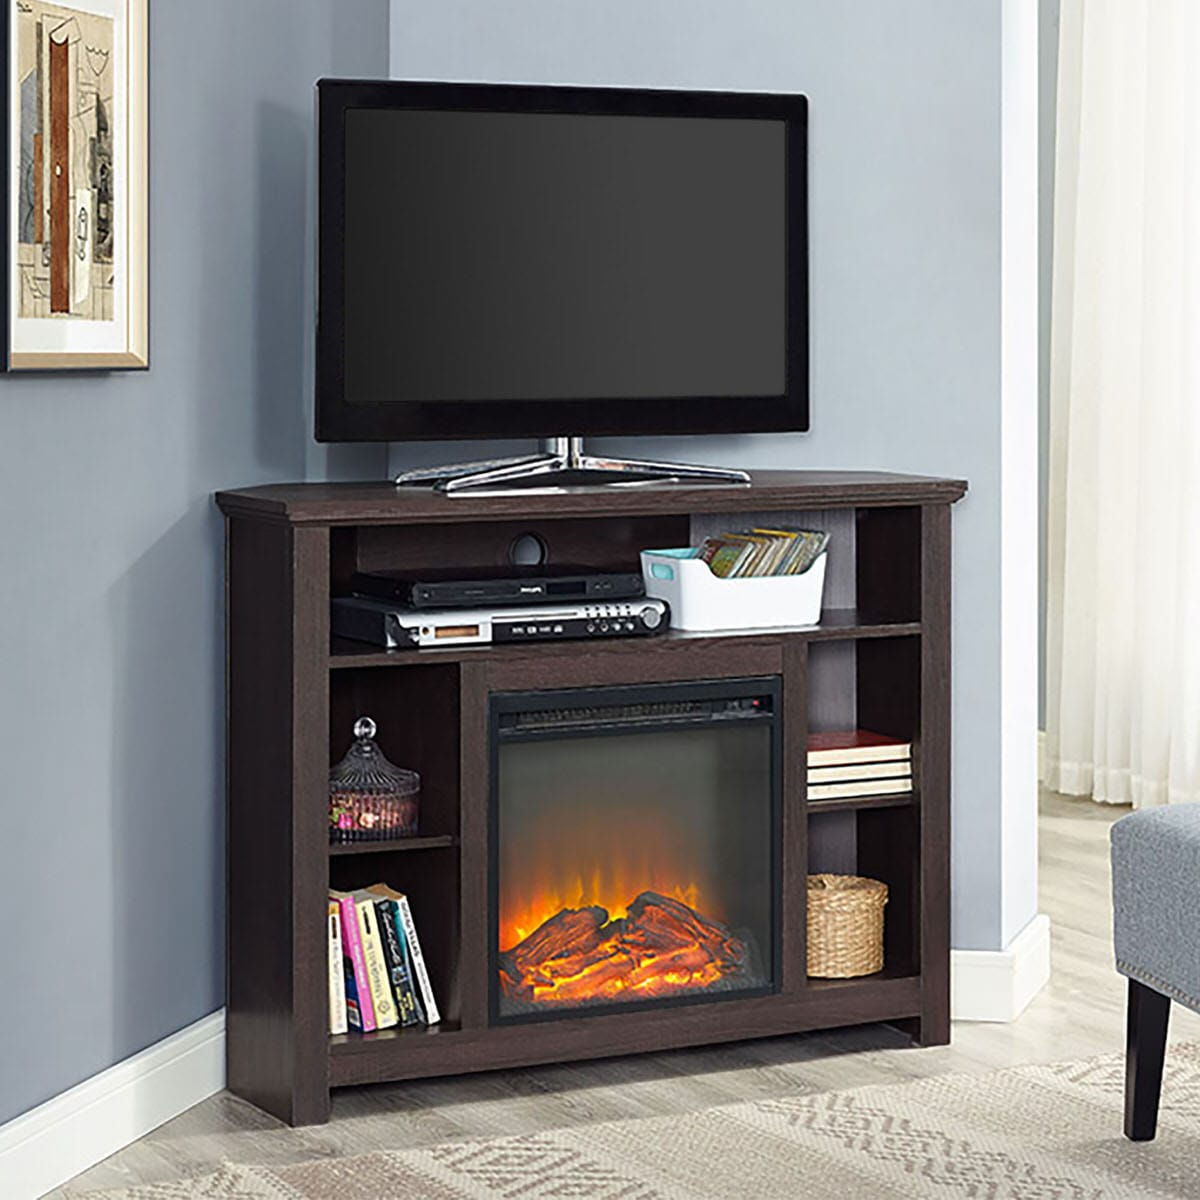 44 Inch Wood Corner Highboy Fireplace Tv Stand Espresso By Walker